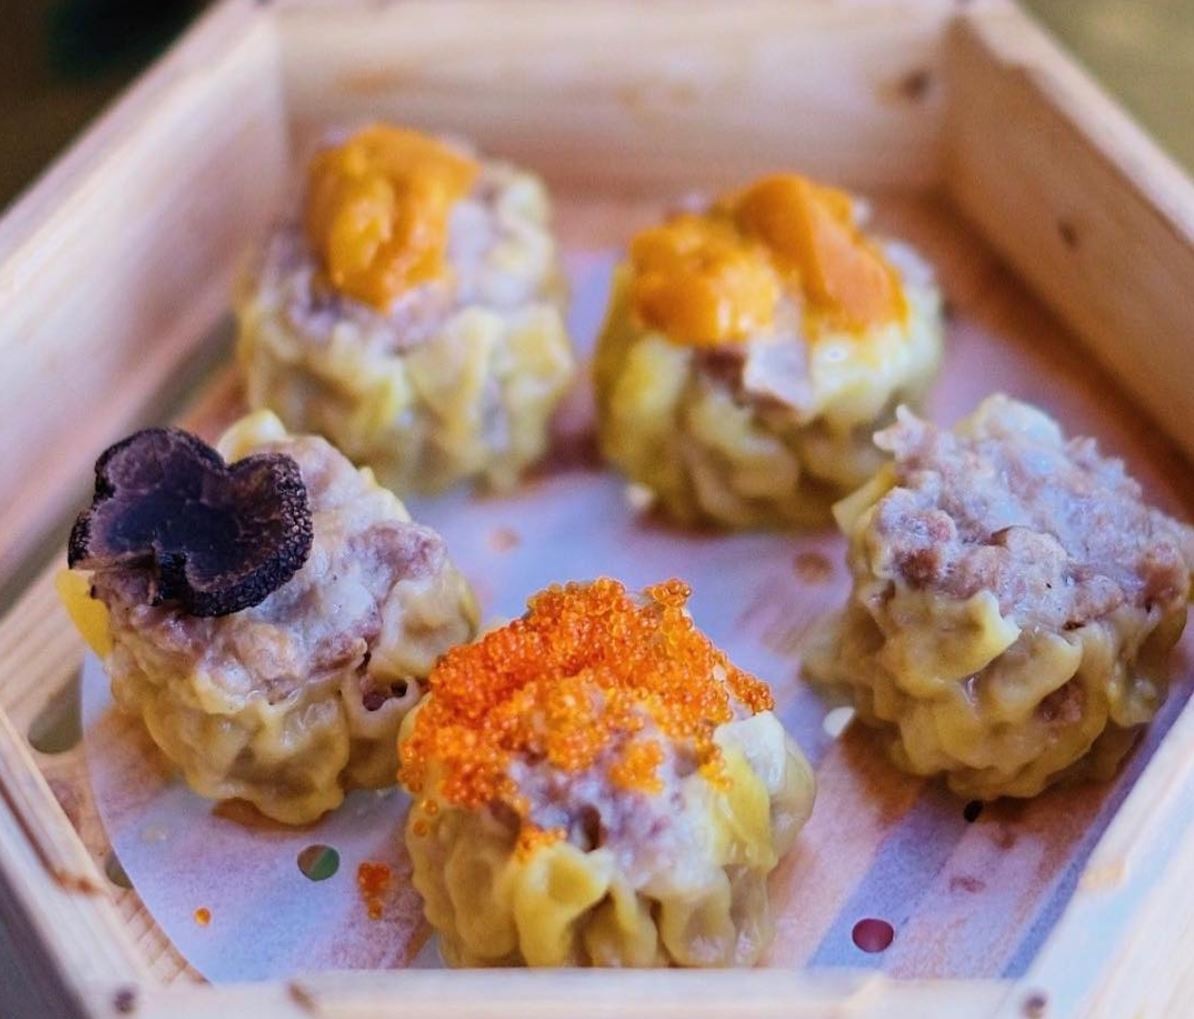 Mon - Thurs | FiftyOne in Buena Park Offers 50% Off Dim Sum (Worth a Visit!)